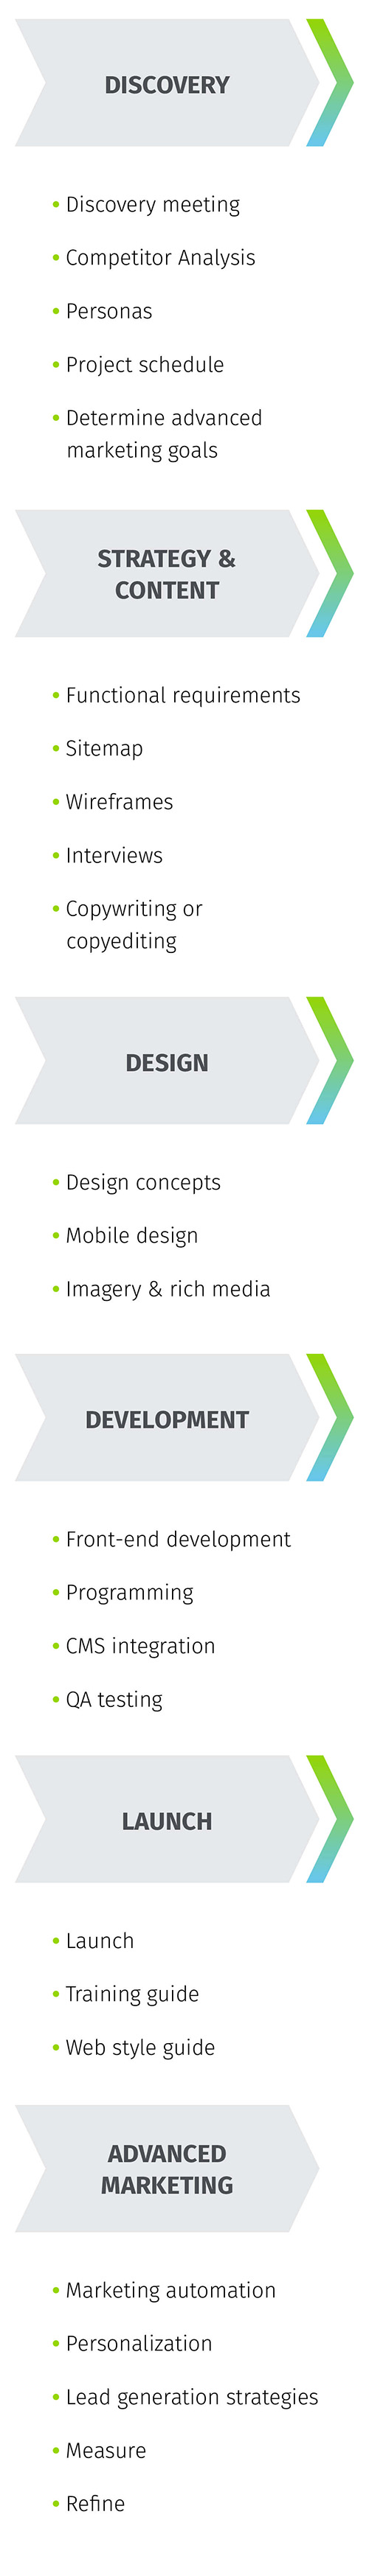 Our approach to enterprise web development includes discovery, strategy and content development, design, development, launch and advanced marketing.